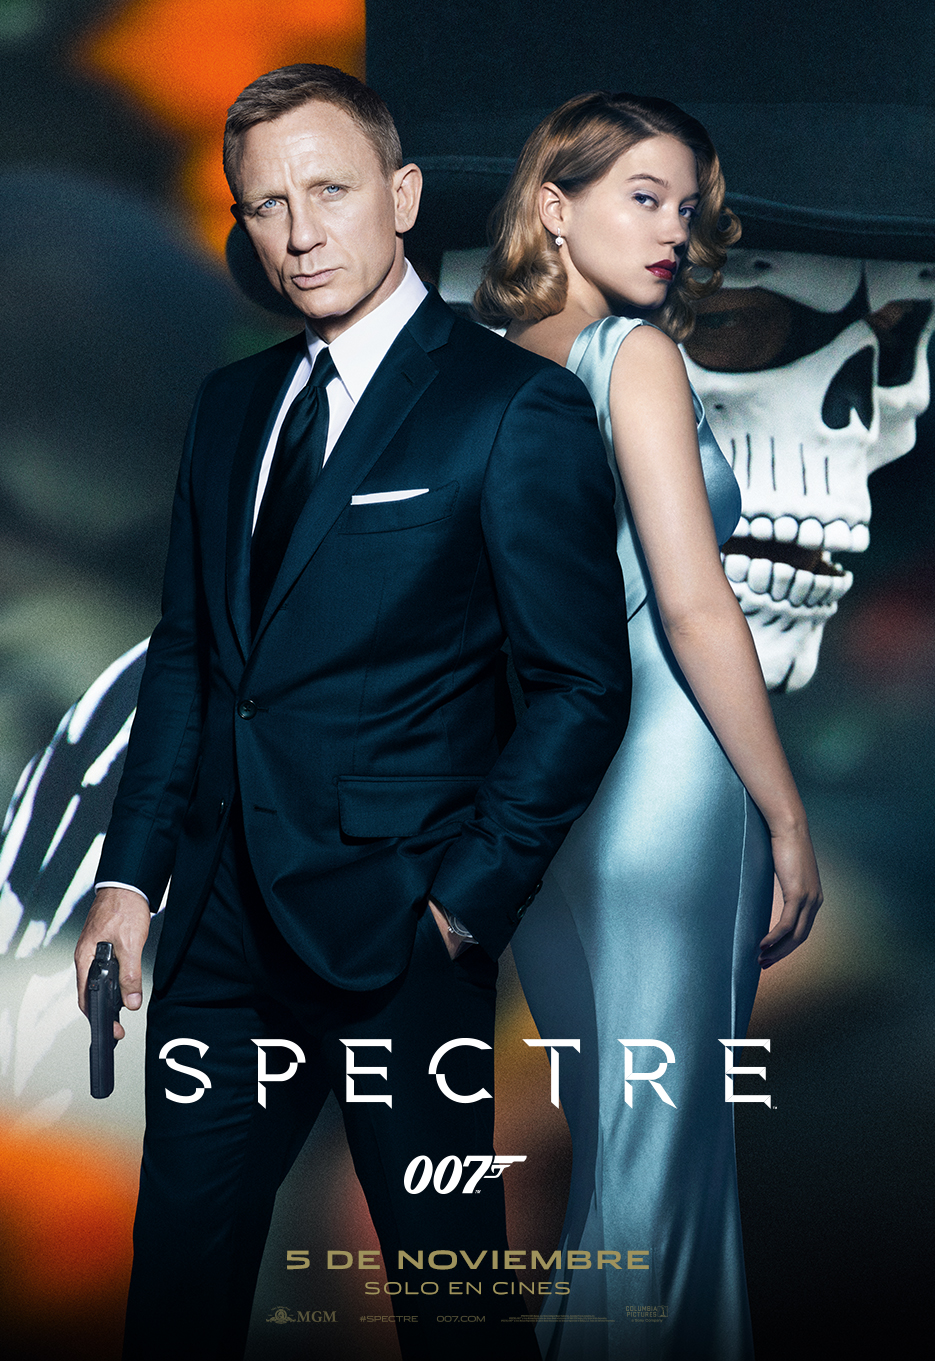 http://www.andesfilms.com.pe/spectre/